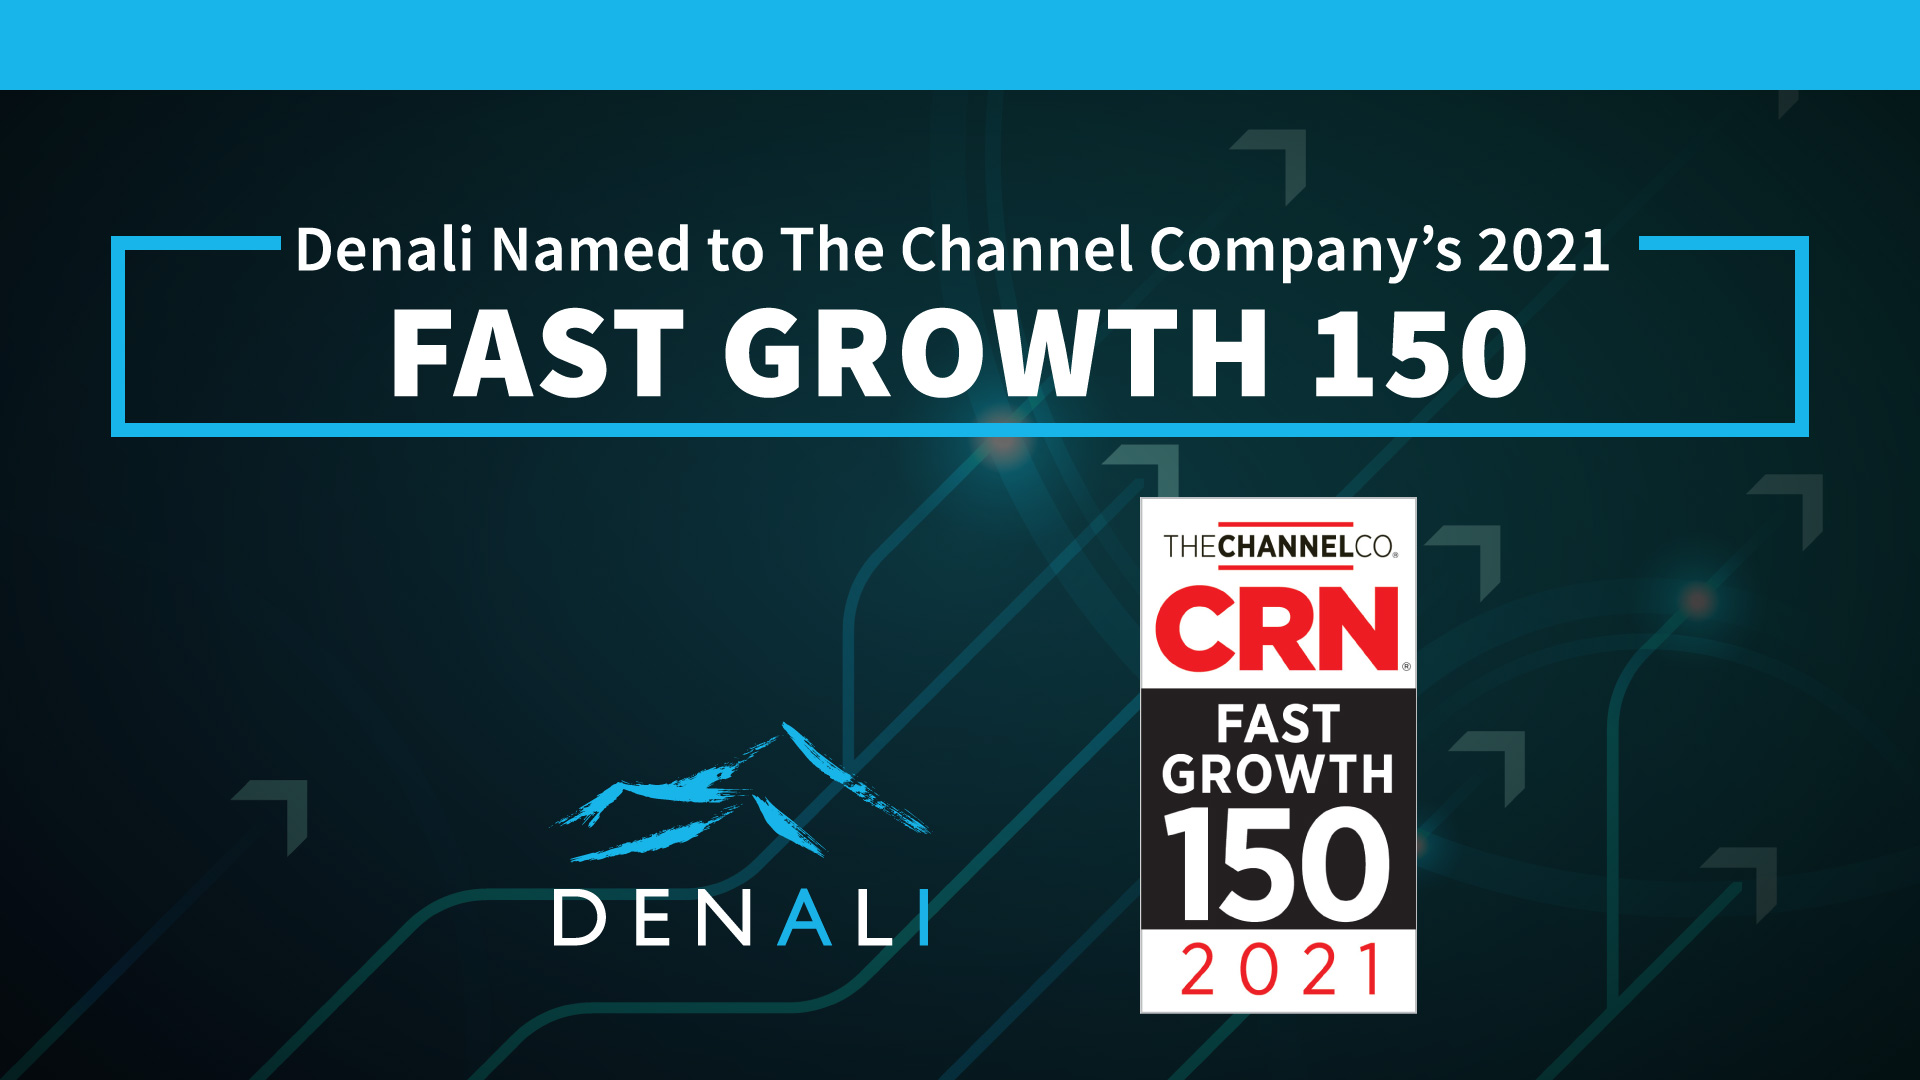 Denali Advanced Integration Places 17th on the 2021 CRN® Fast Growth 150 List